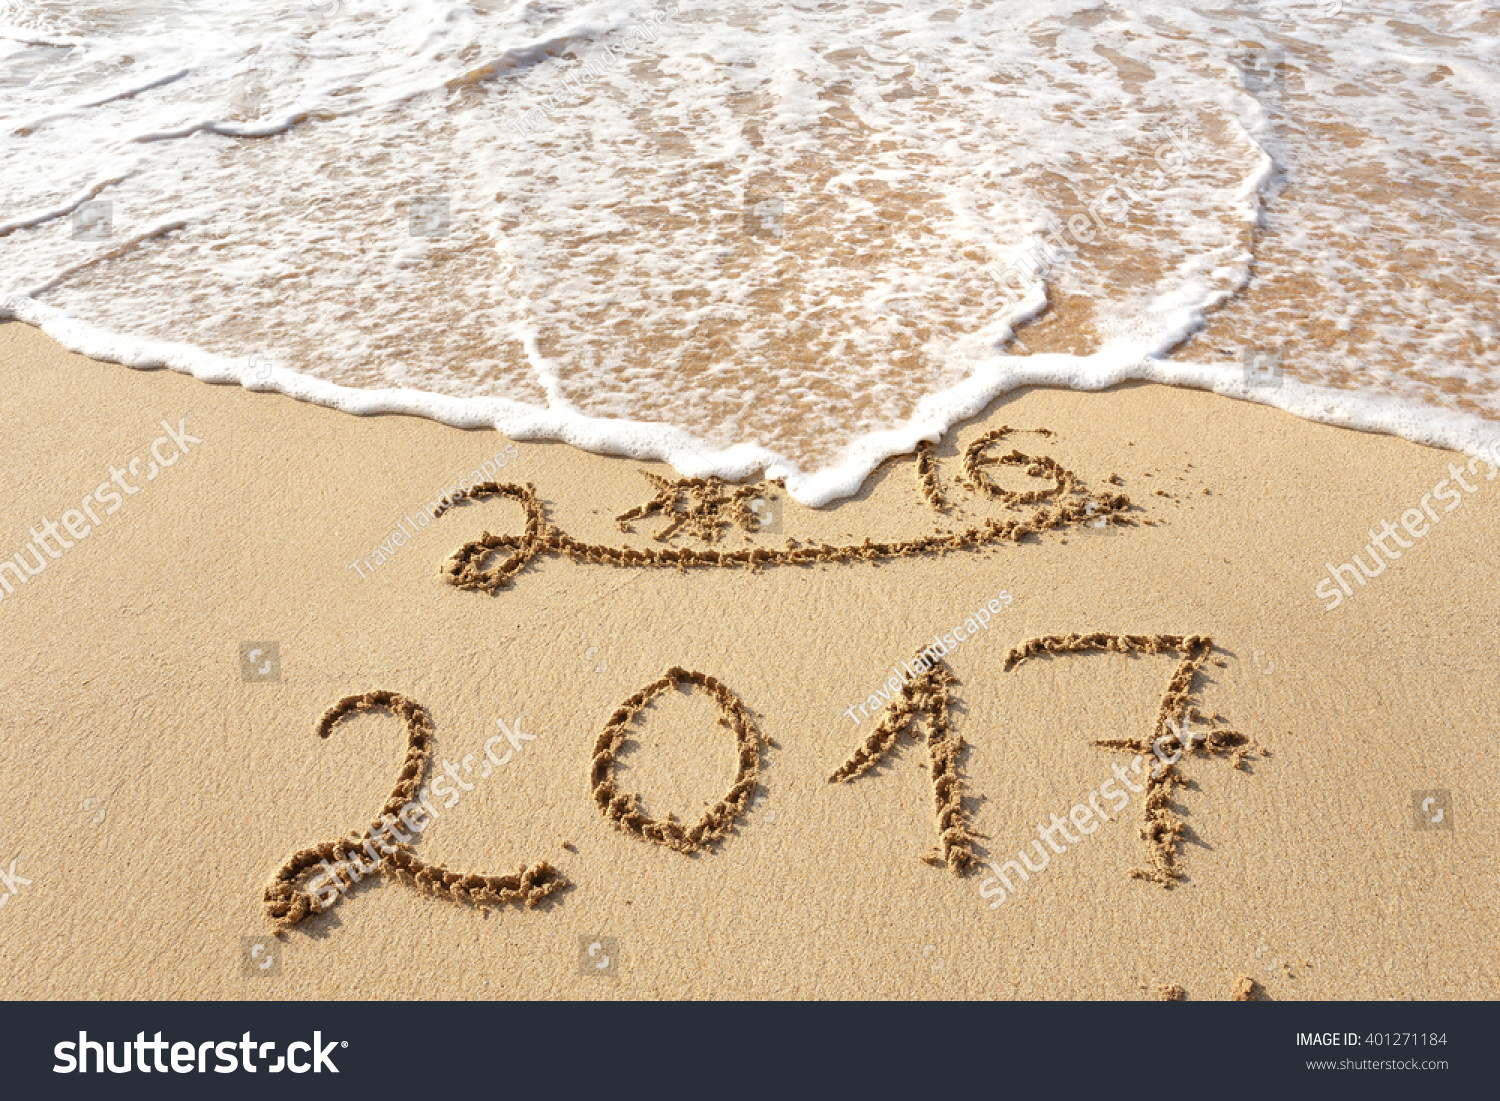 Happy New Year 2017 replace 2016 text on the sea beach #401271184